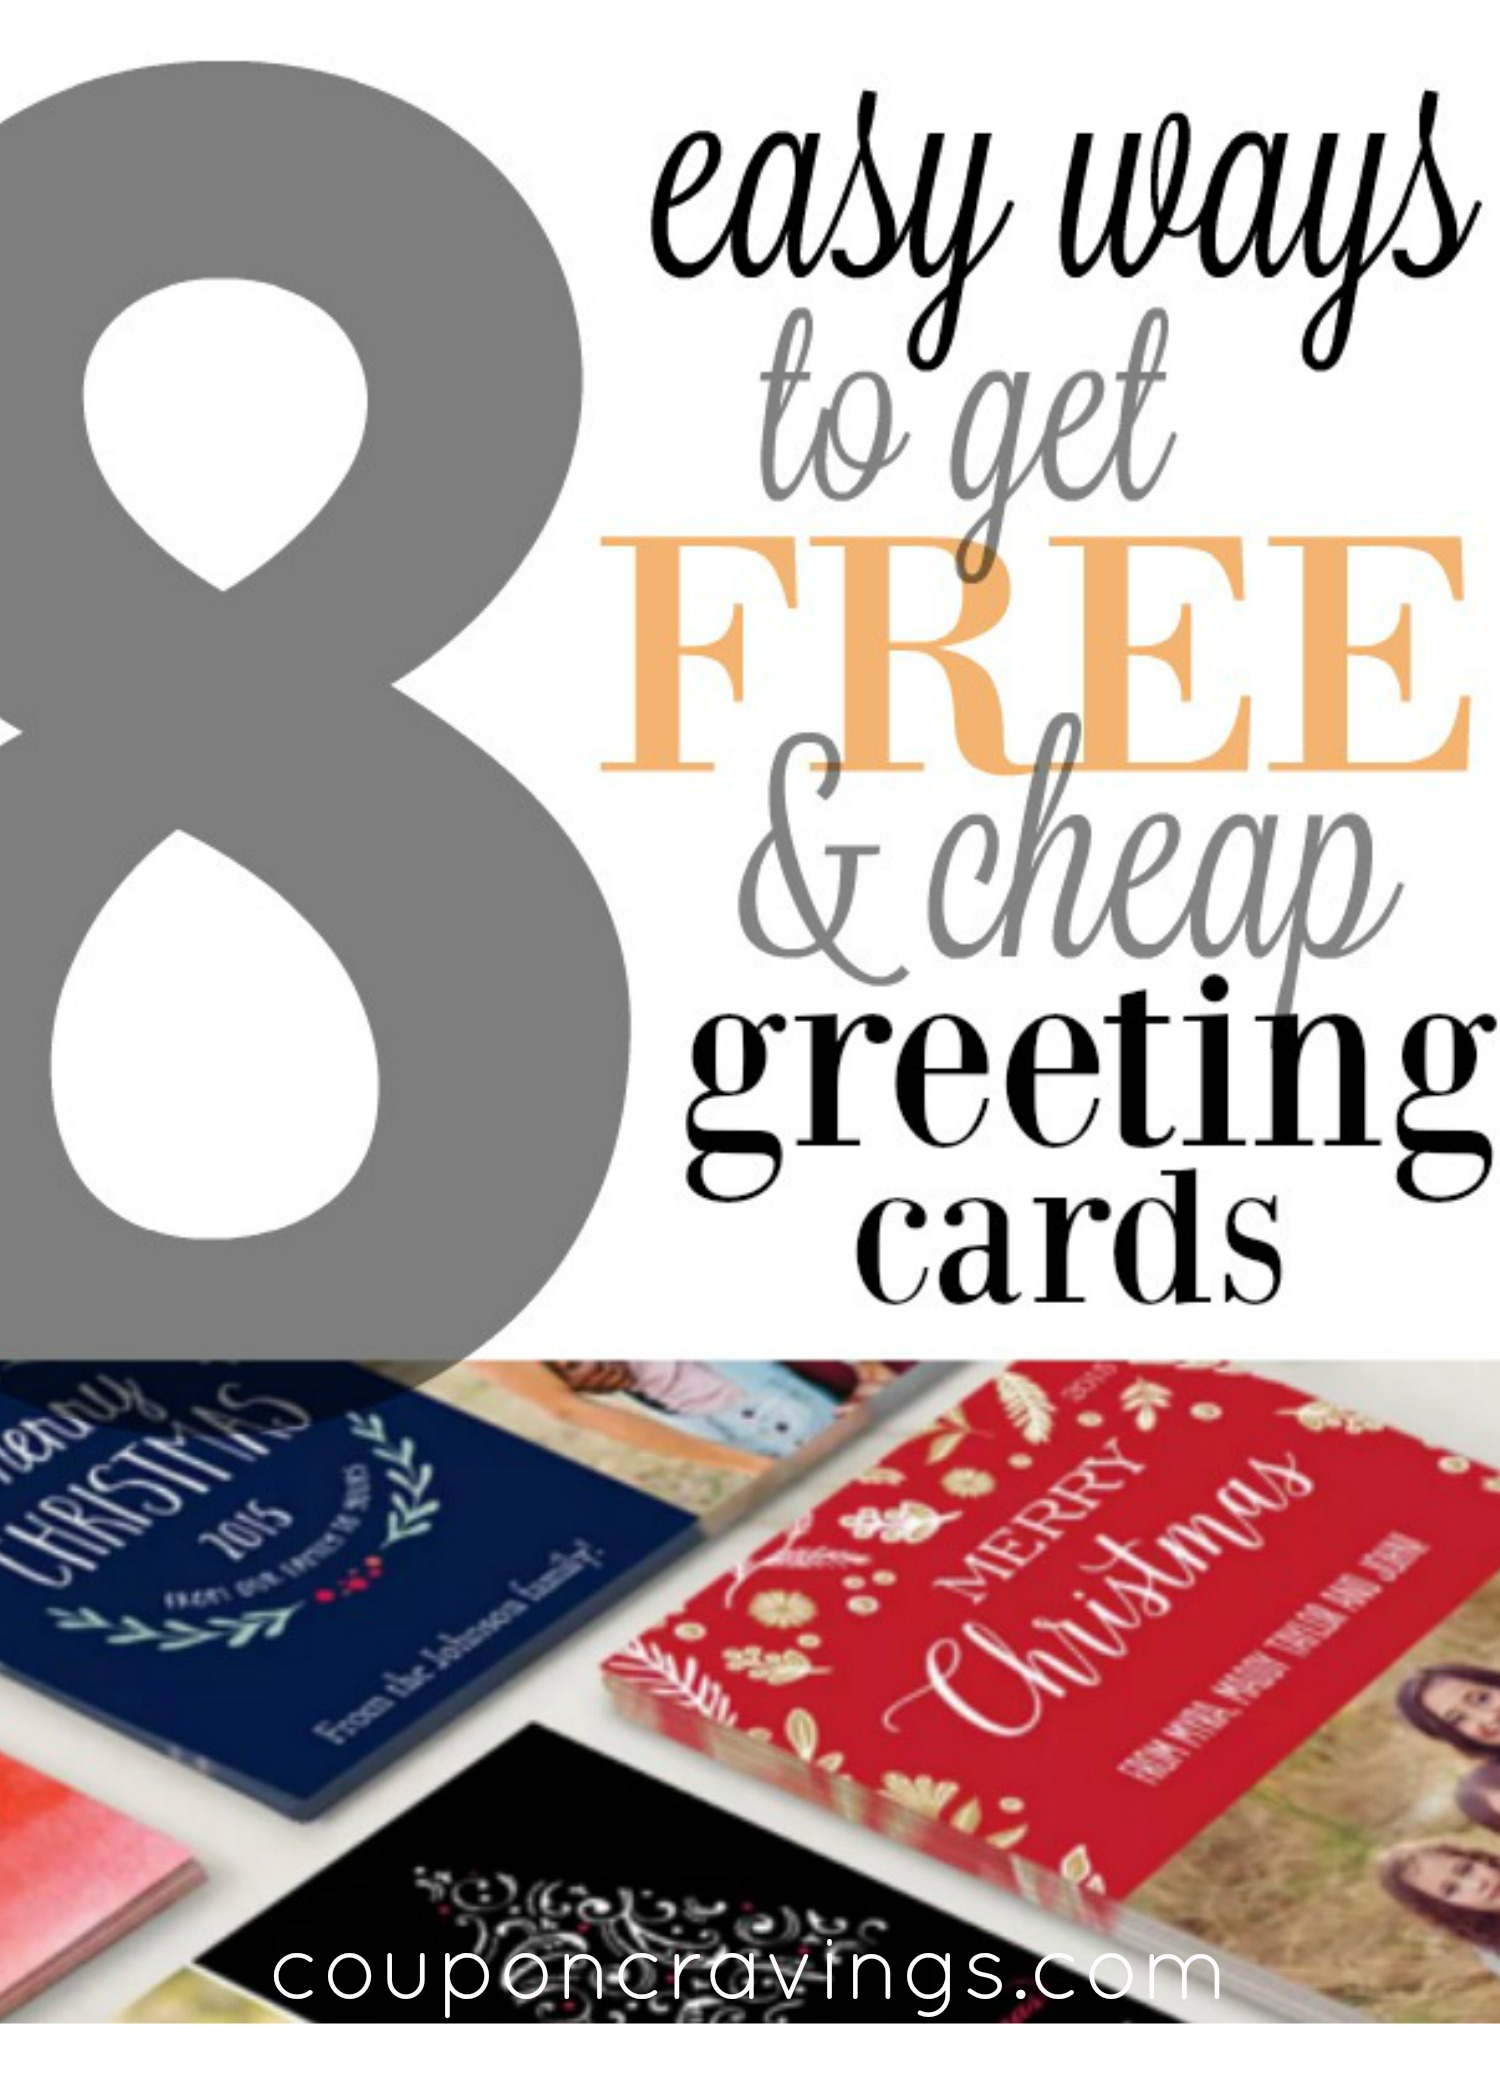 While you're looking for those Christmas card photo ideas, don't miss out on the free Christmas card deals! Number one in this post will easily get you 50 free Christmas Cards!